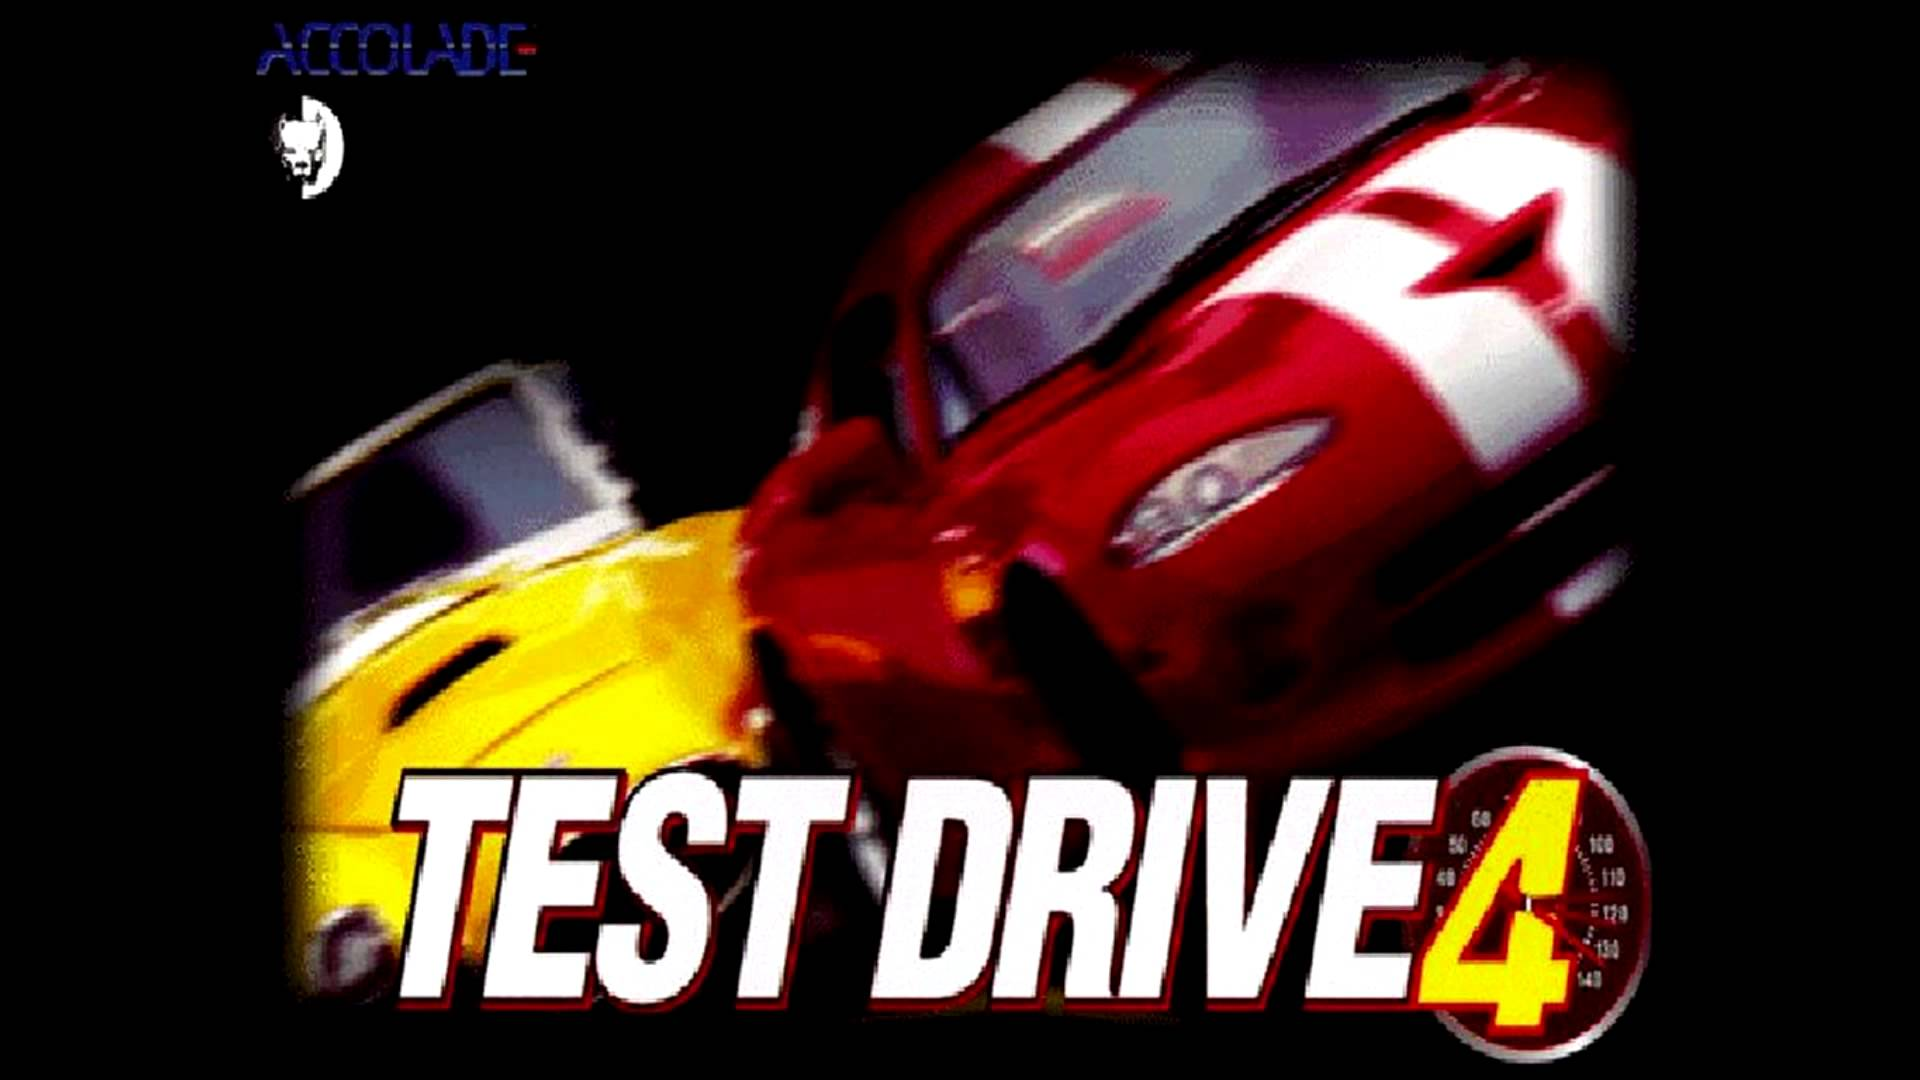 Test Drive 4,5,6 & overdrive